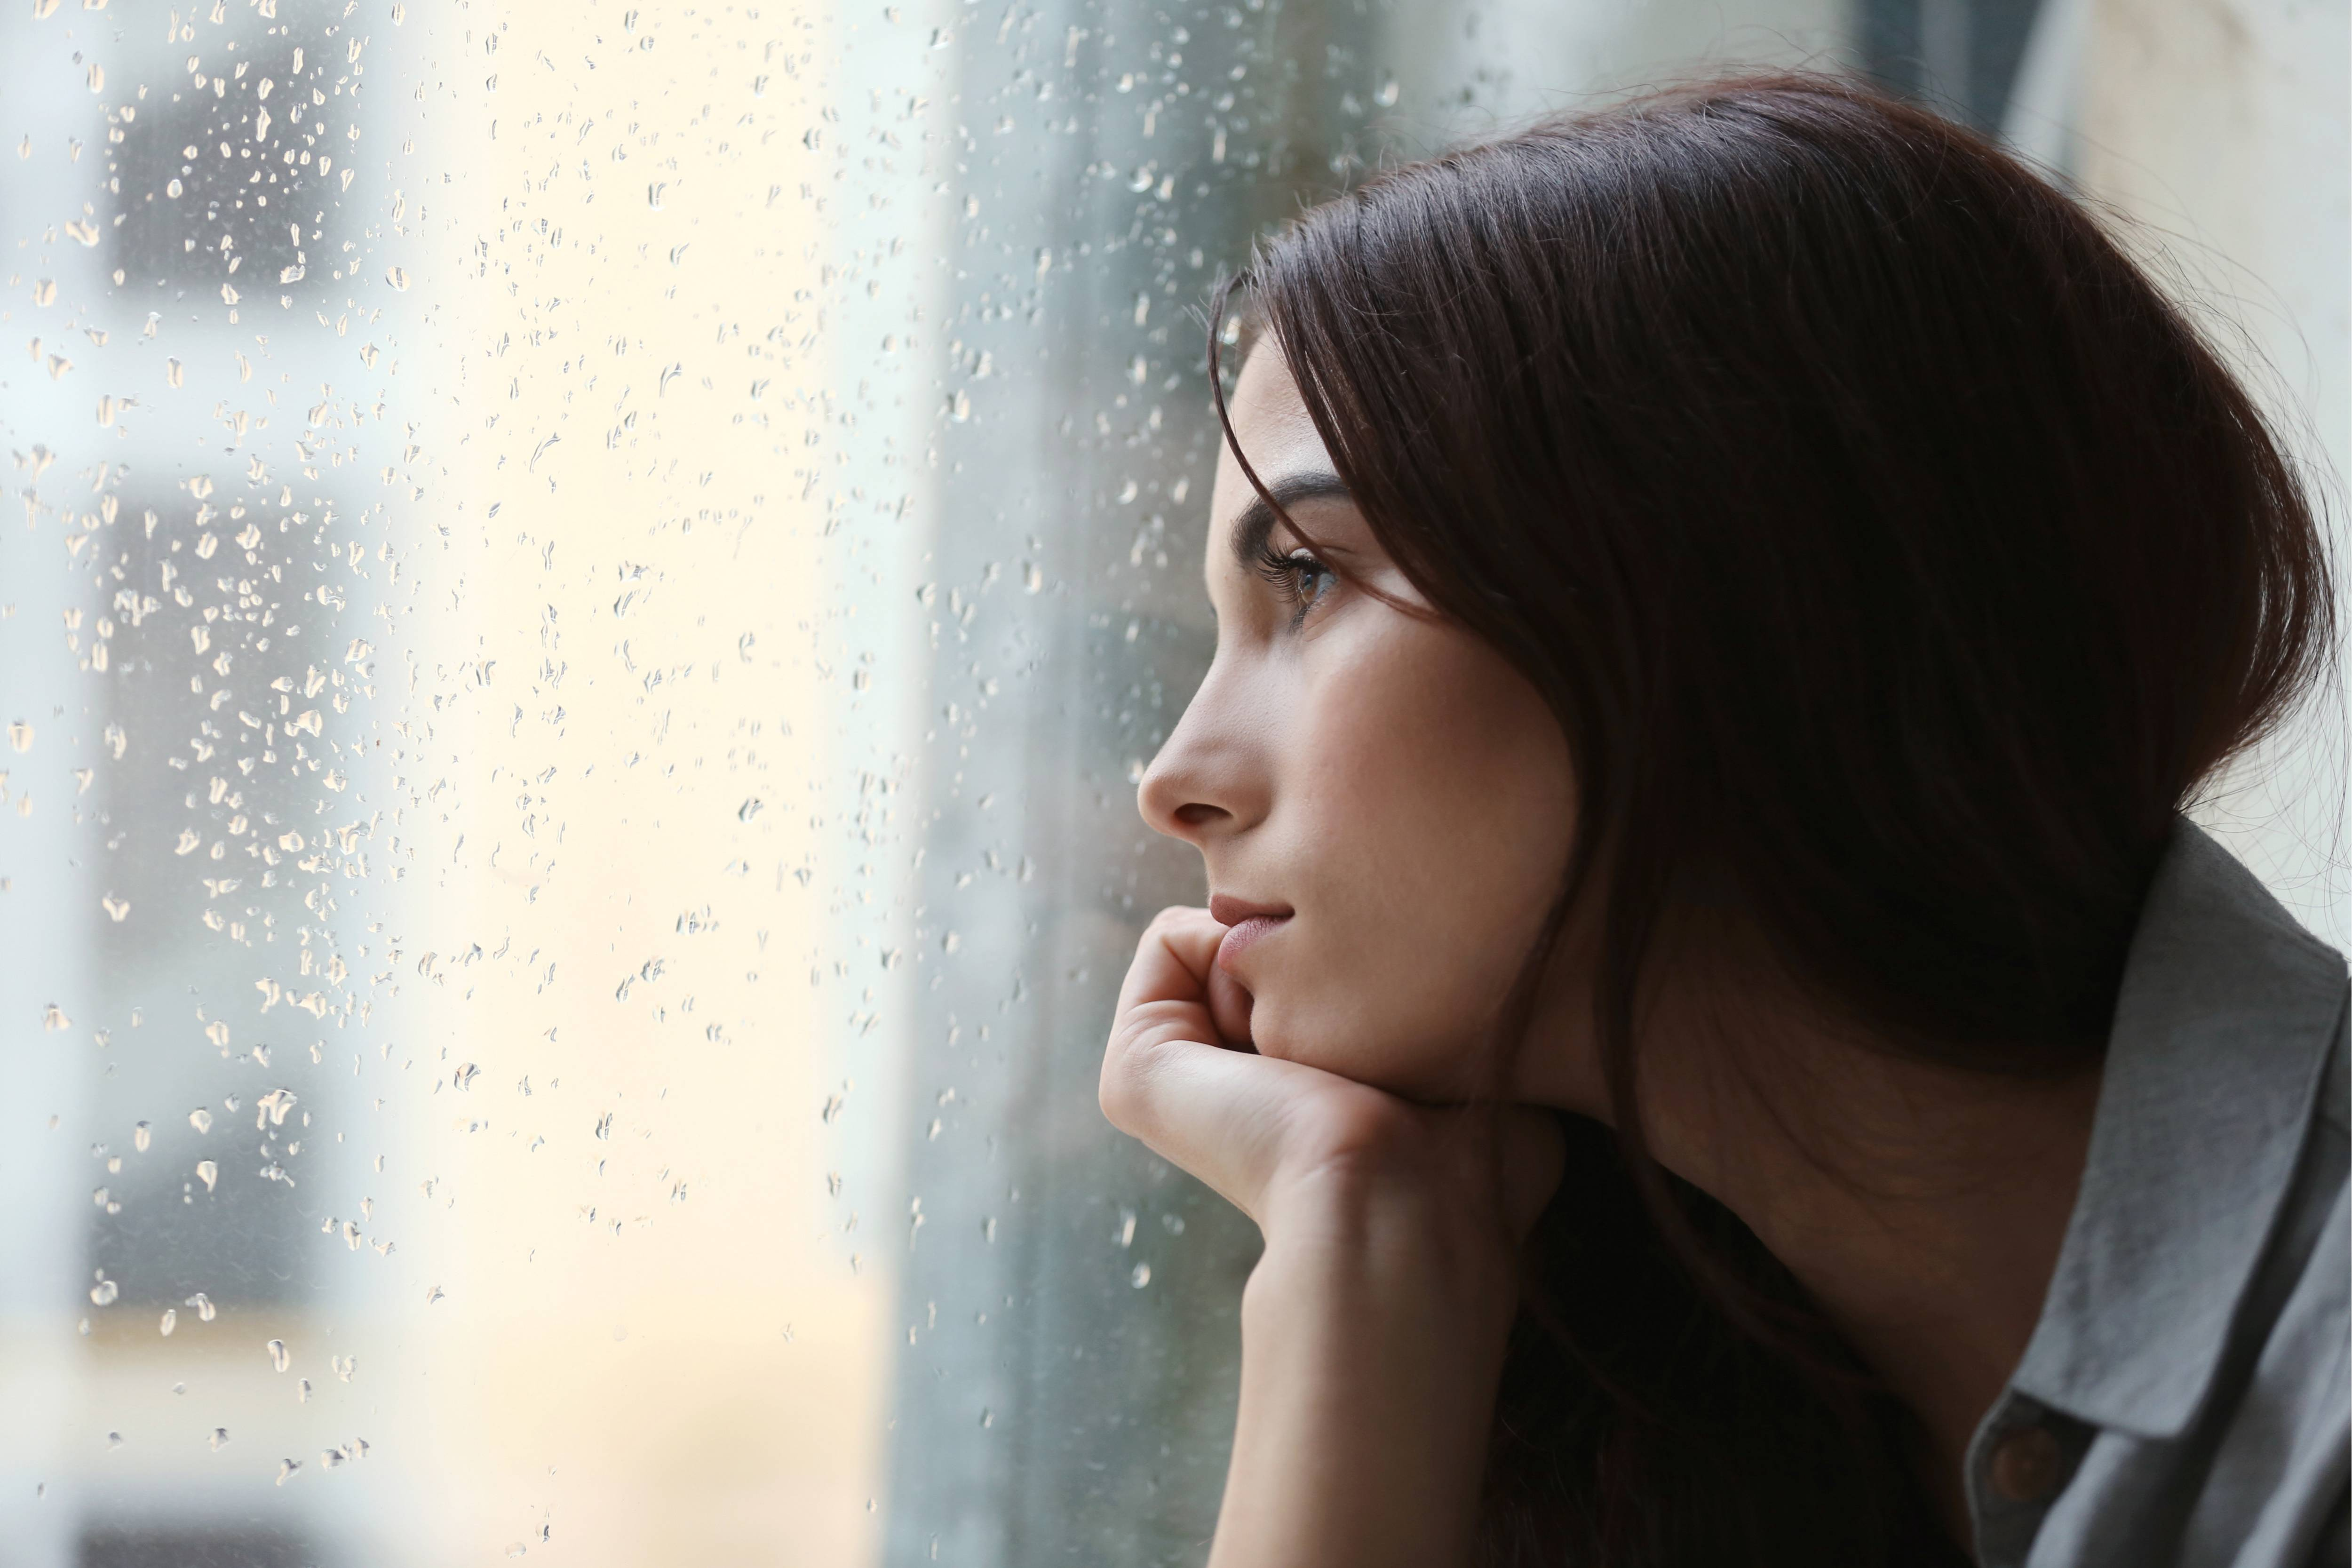 Woman stares out of window into the rain  (1).jpg